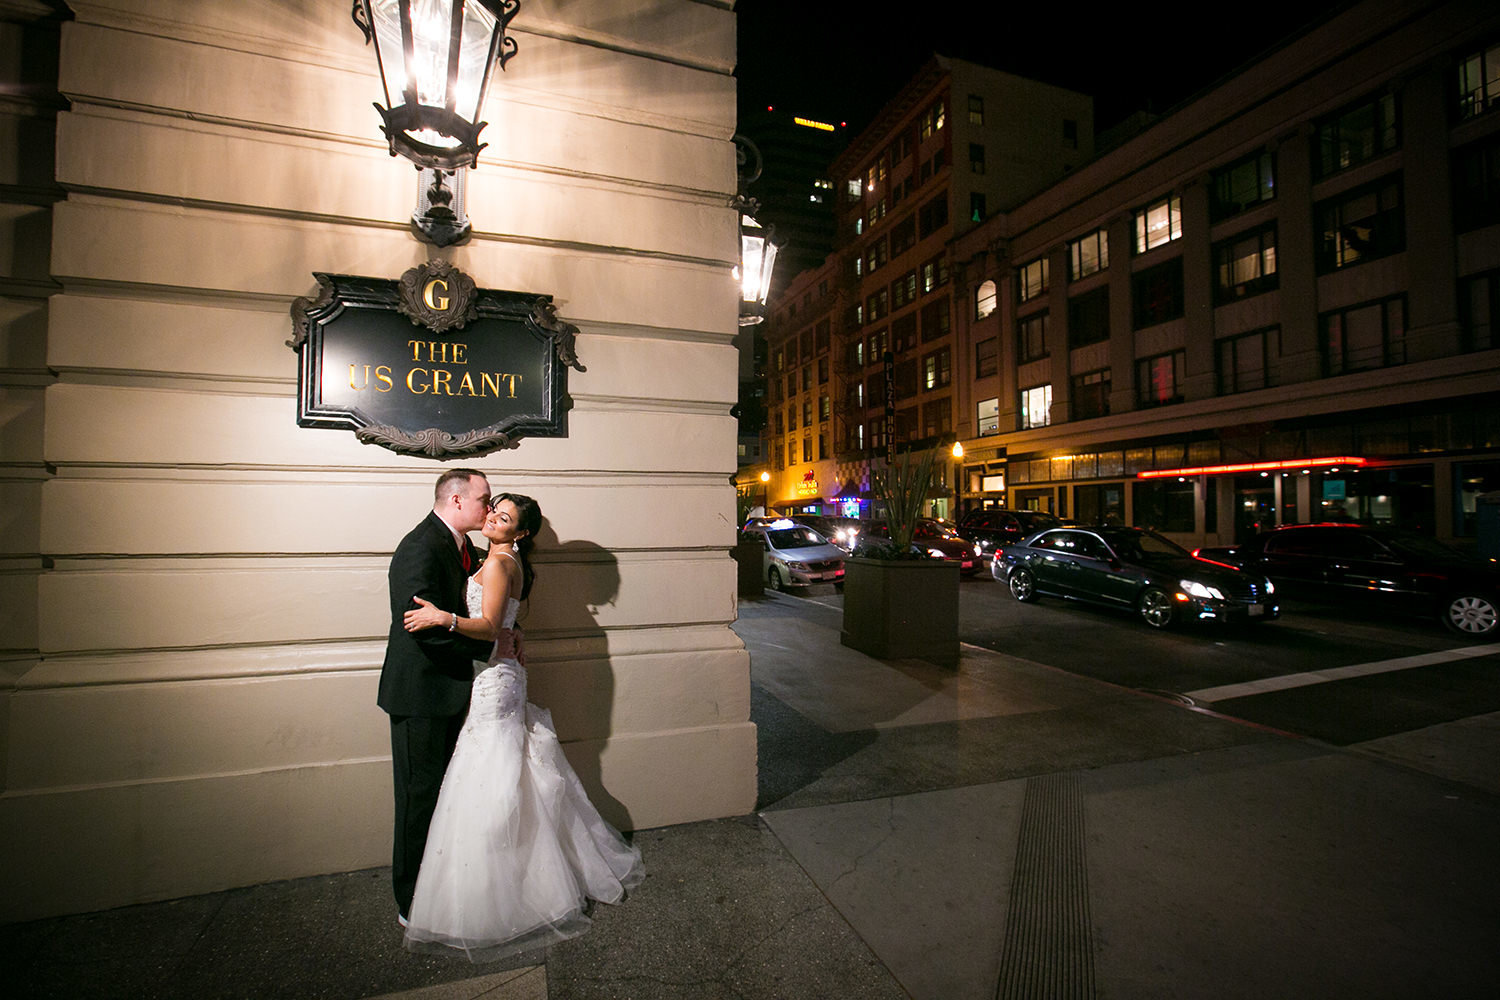 night shot with bride and groom at us grant hotel